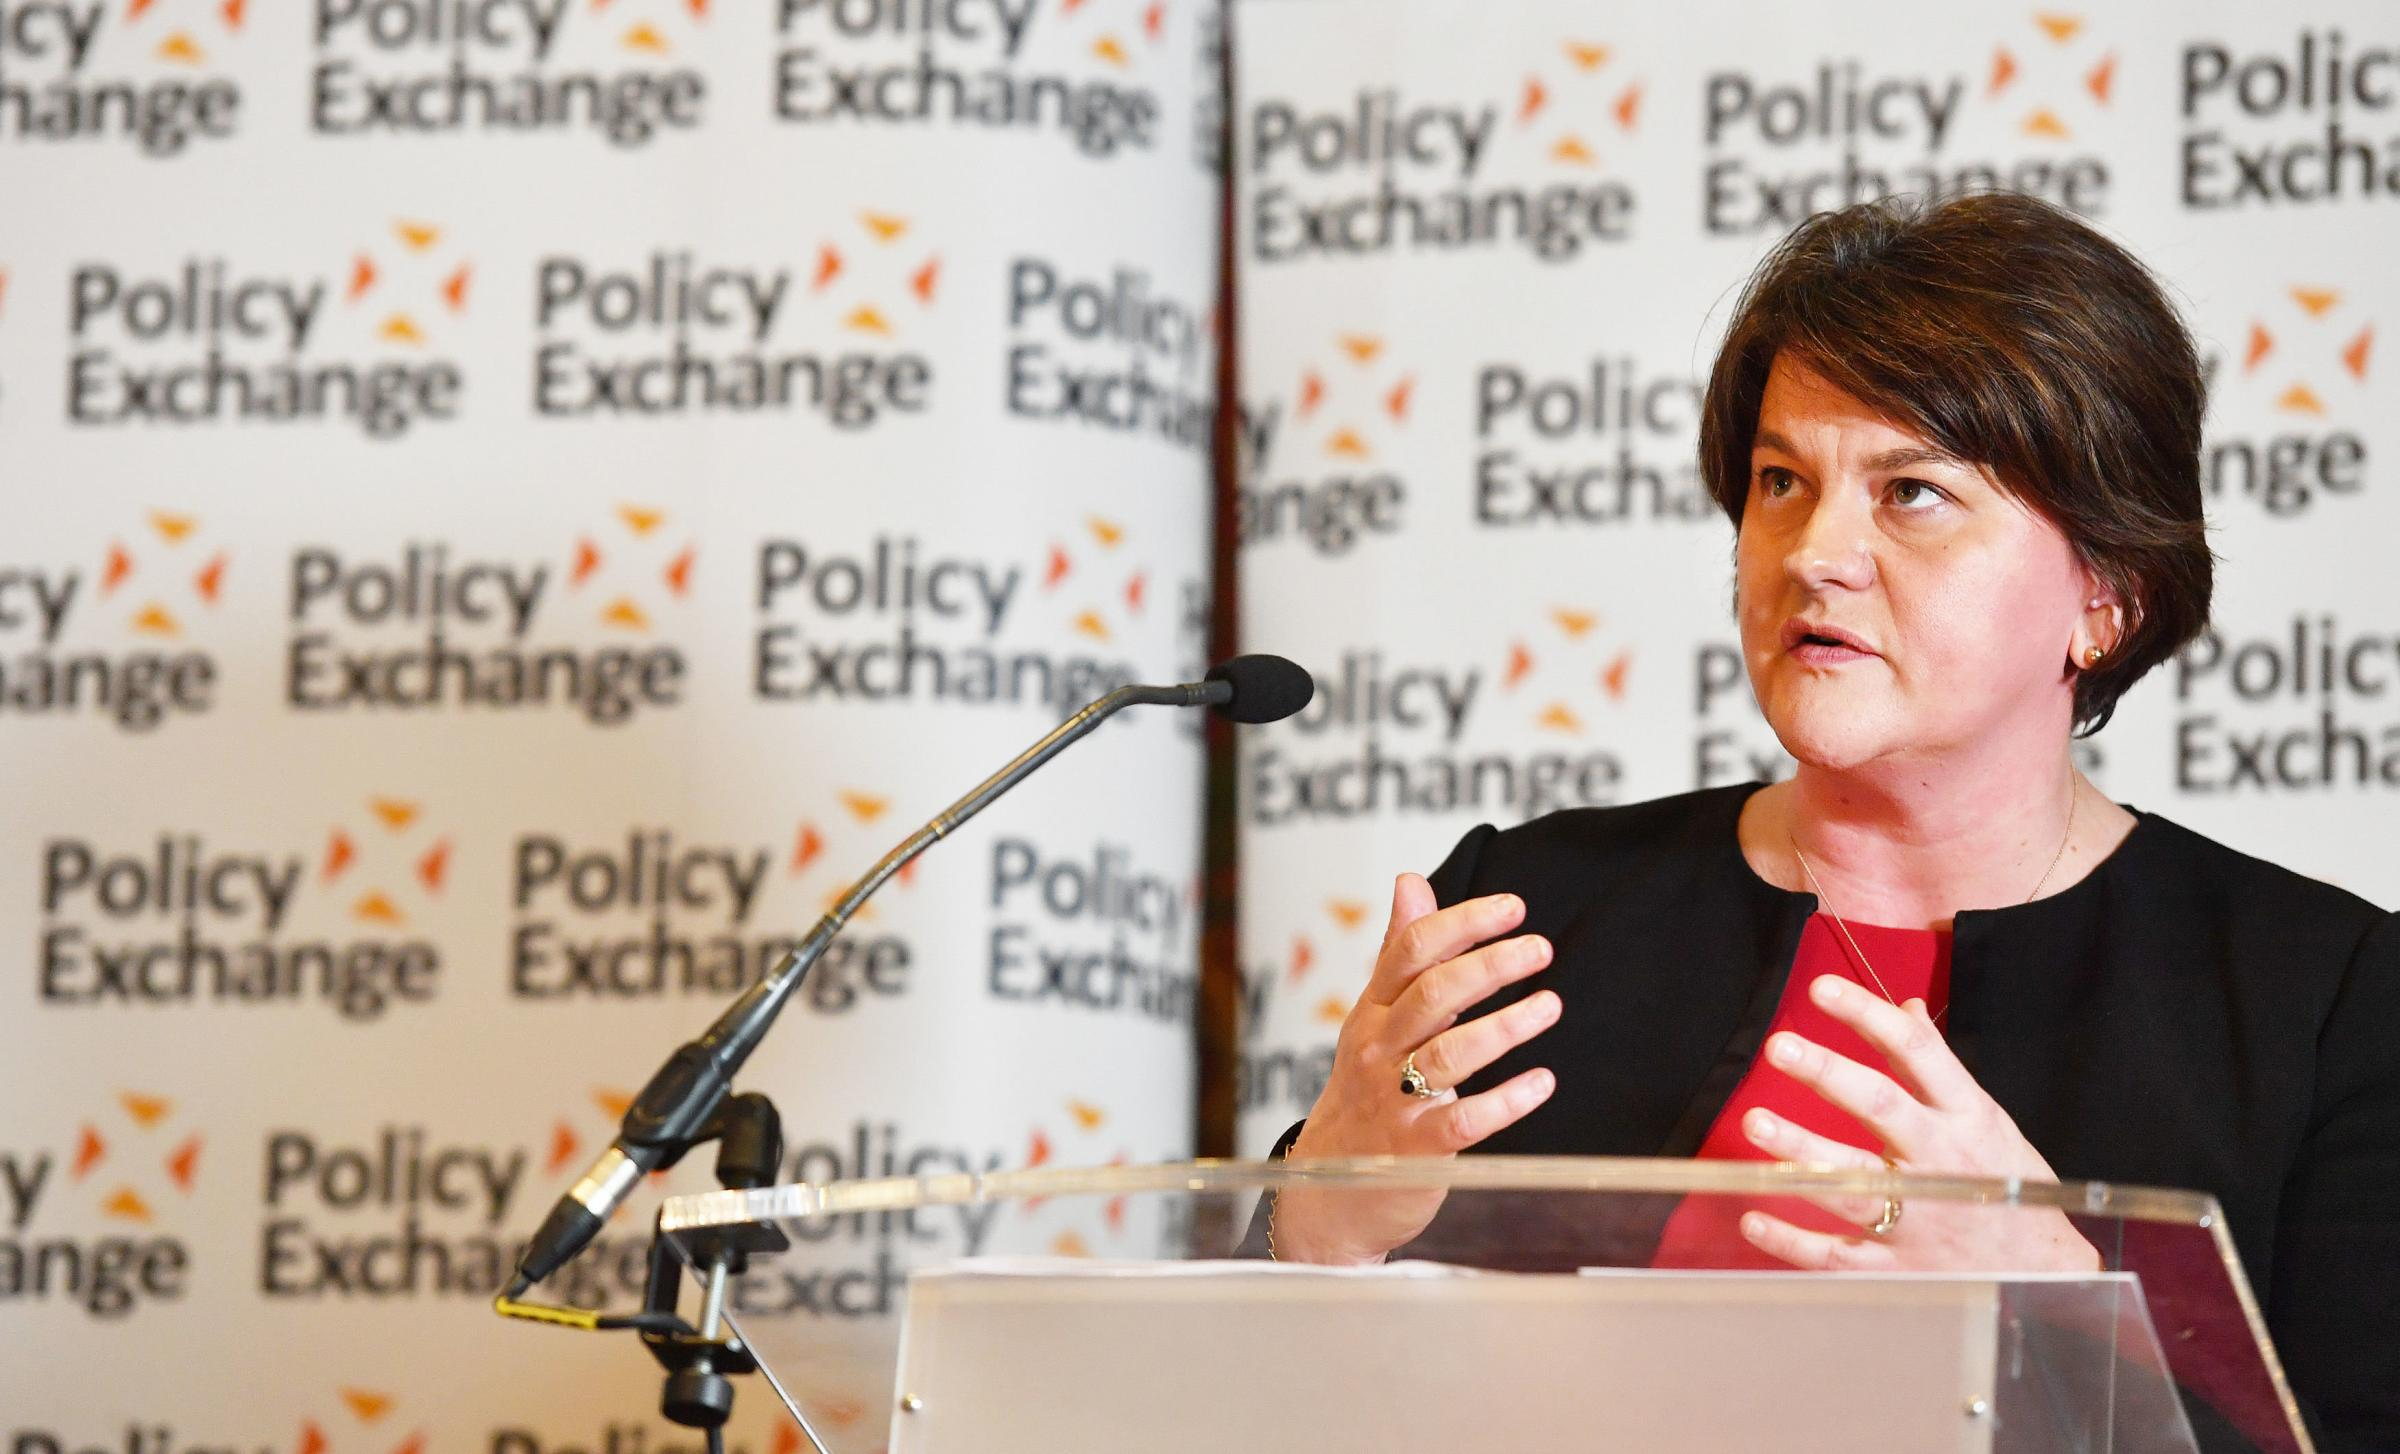 DUP leader Arlene Foster spoke at a Policy Exchange event in London